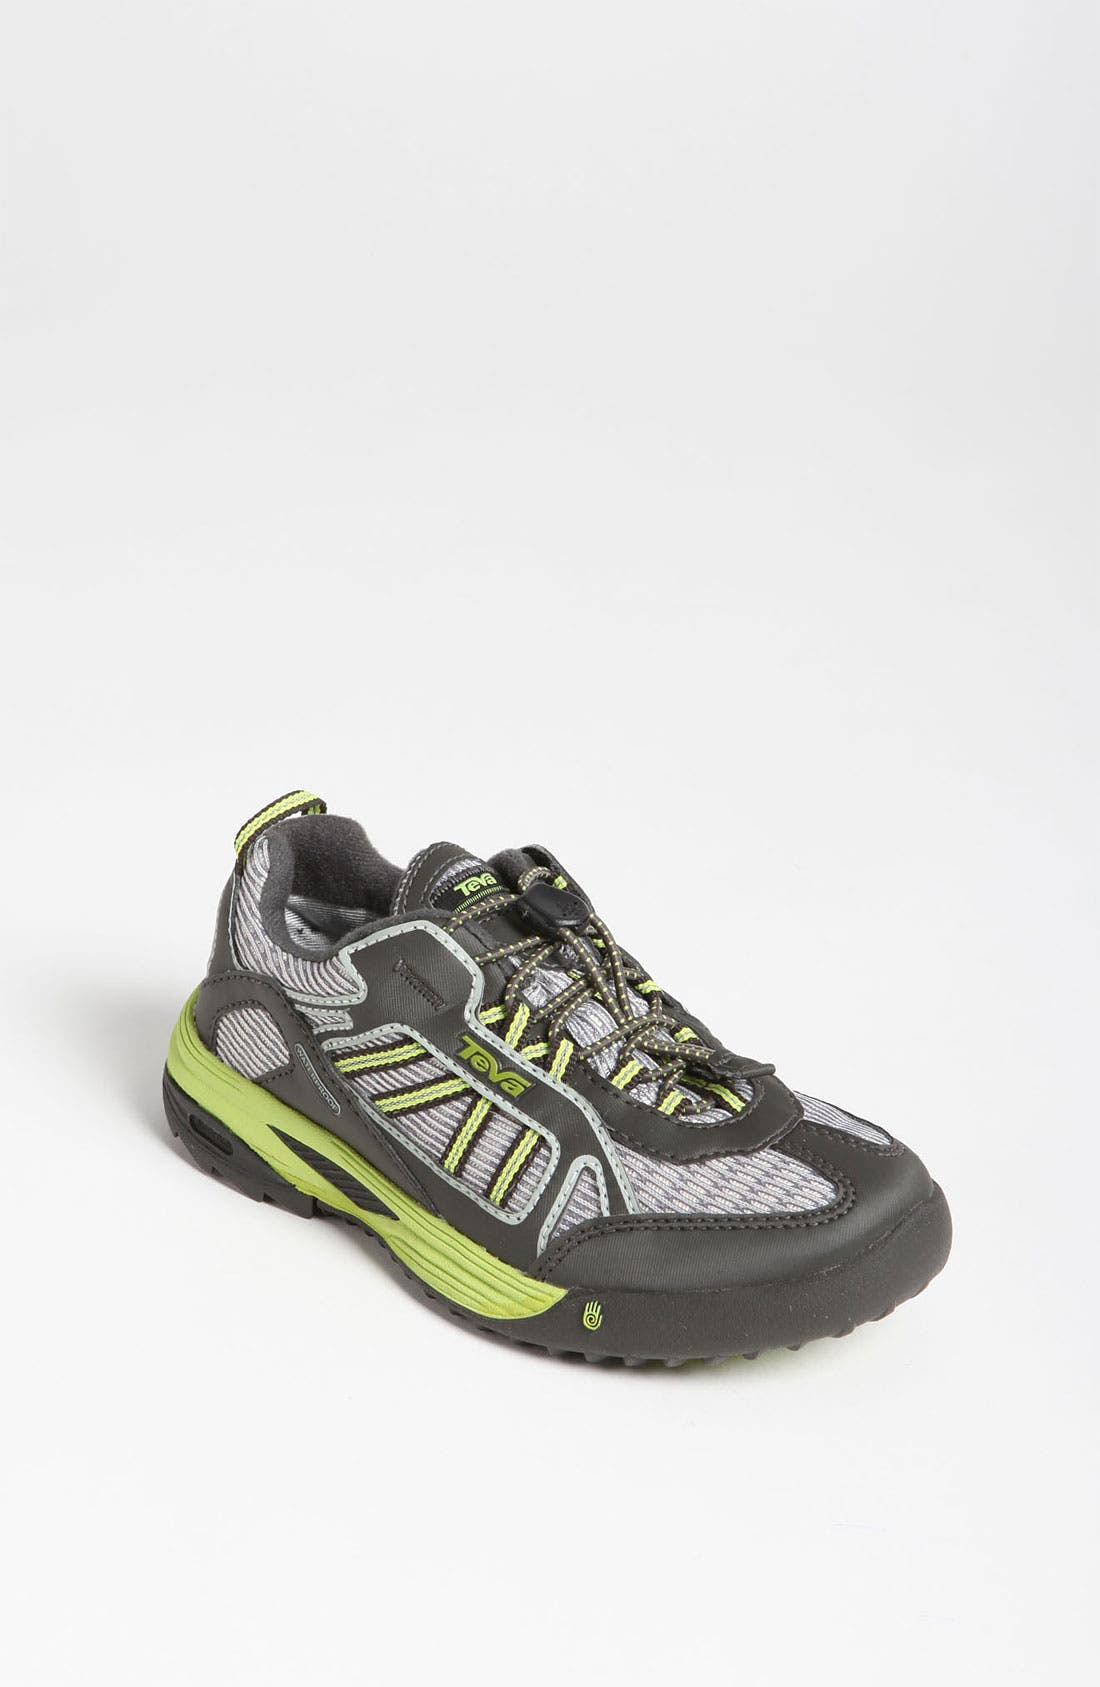 Alternate Image 1 Selected - Teva 'Charge' Waterproof Sneaker (Toddler & Little Kid)